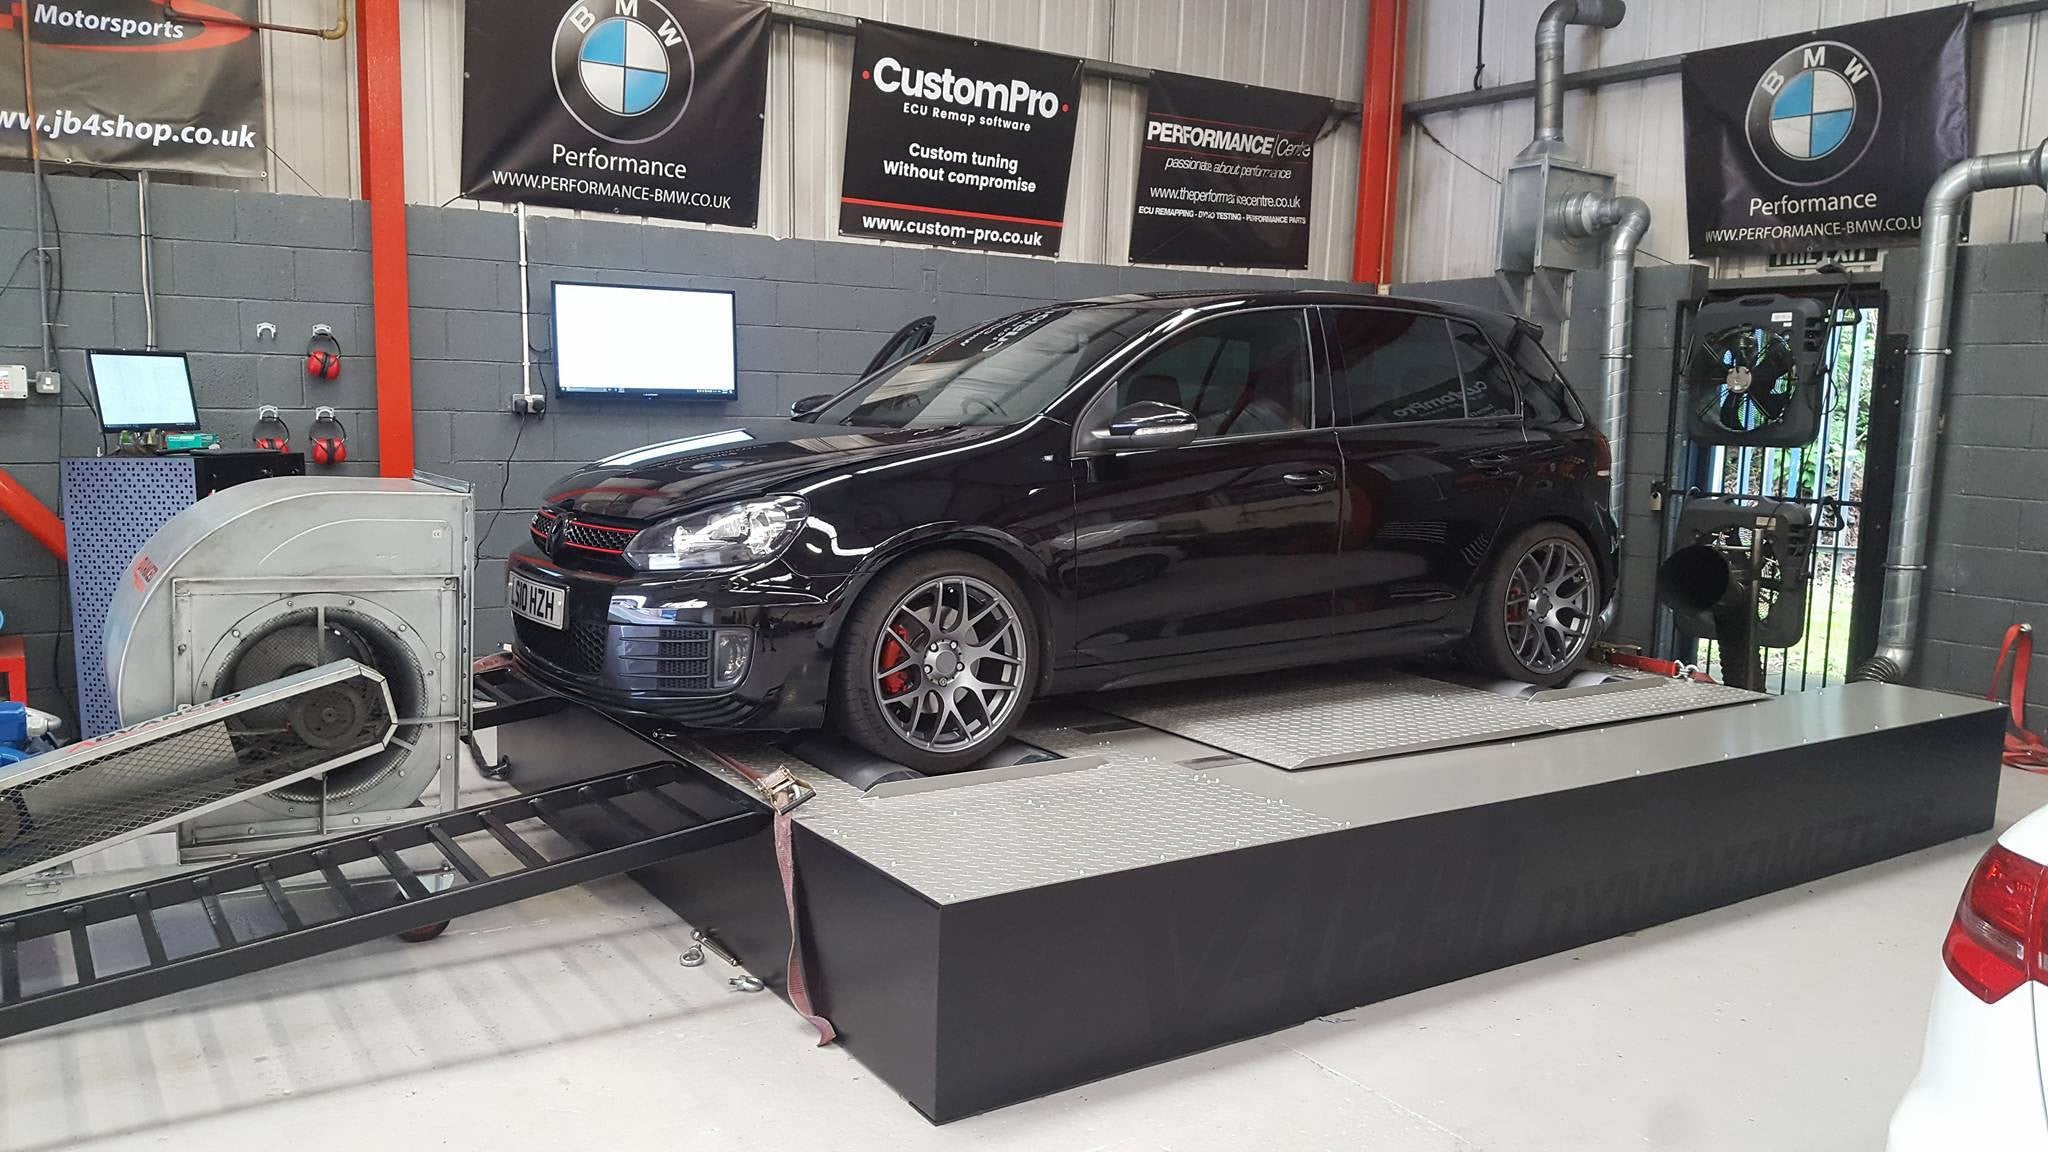 Volkswagen Golf GTi - Software upgrade